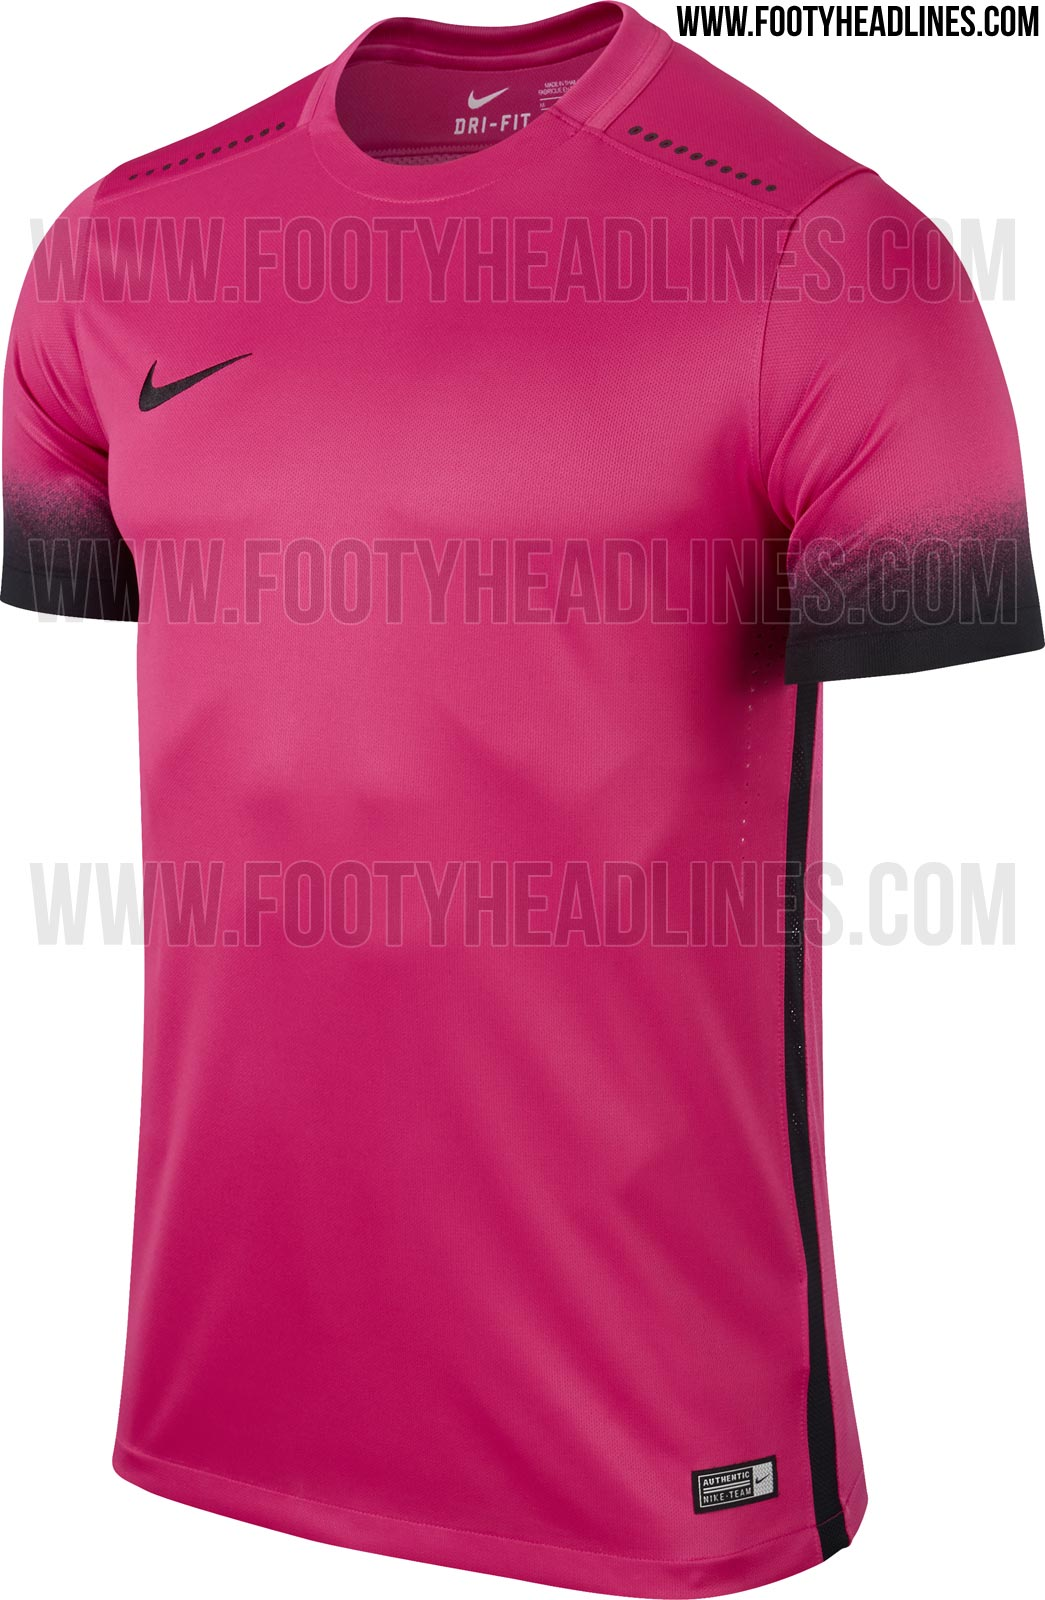 Psg black and pink jersey - The Nike Laser Iii Kit Teamwear Template Is Available In Four Color Variants Royal Blue Black University Red Black Vivid Pink Black And White